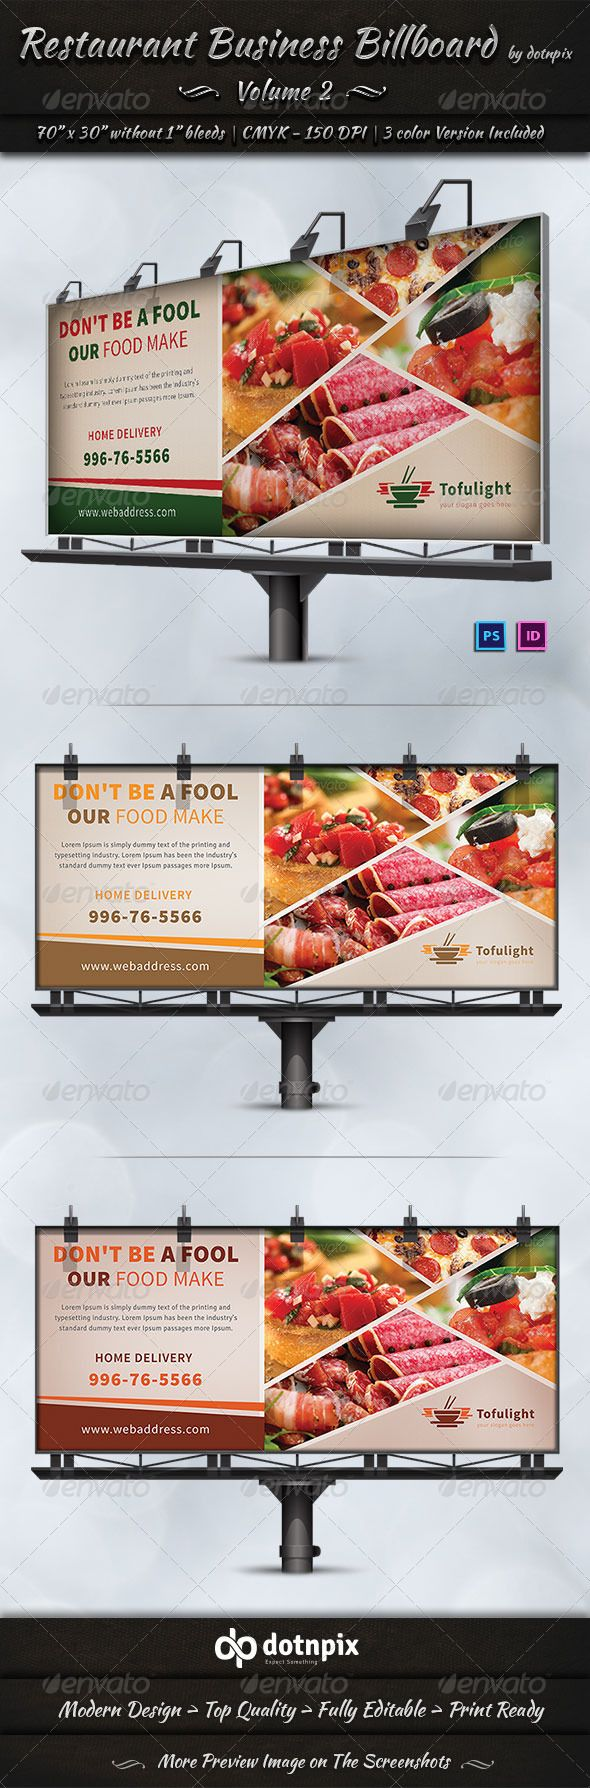 Restaurant Business Billboard Template #design #ads Download: http://graphicriver.net/item/restaurant-business-billboard-volume-2/7298713?ref=ksioks